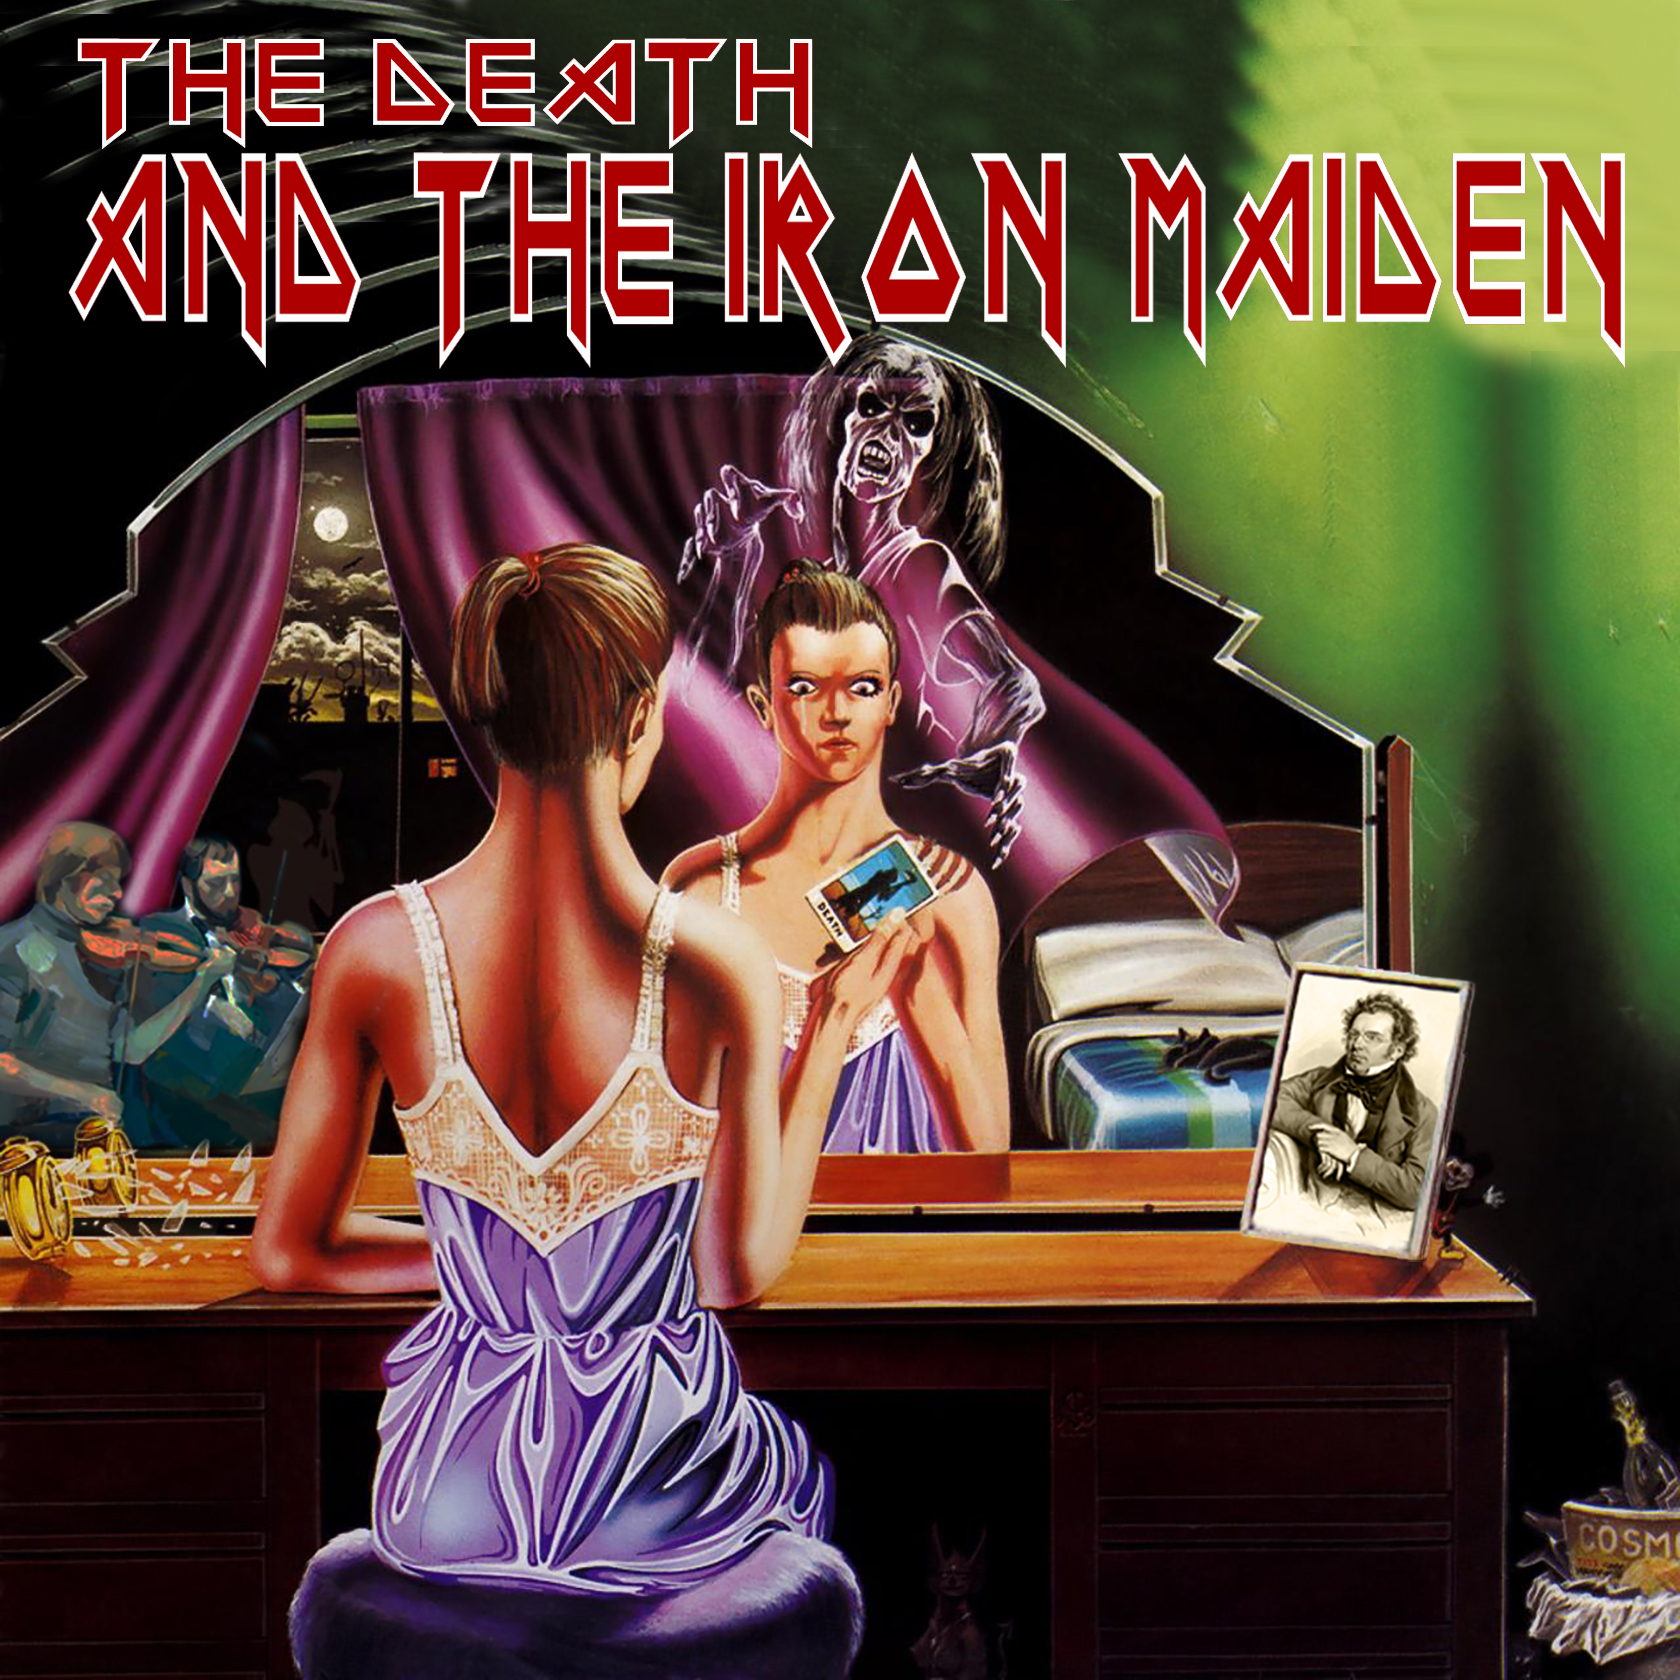 the death and the iron maiden